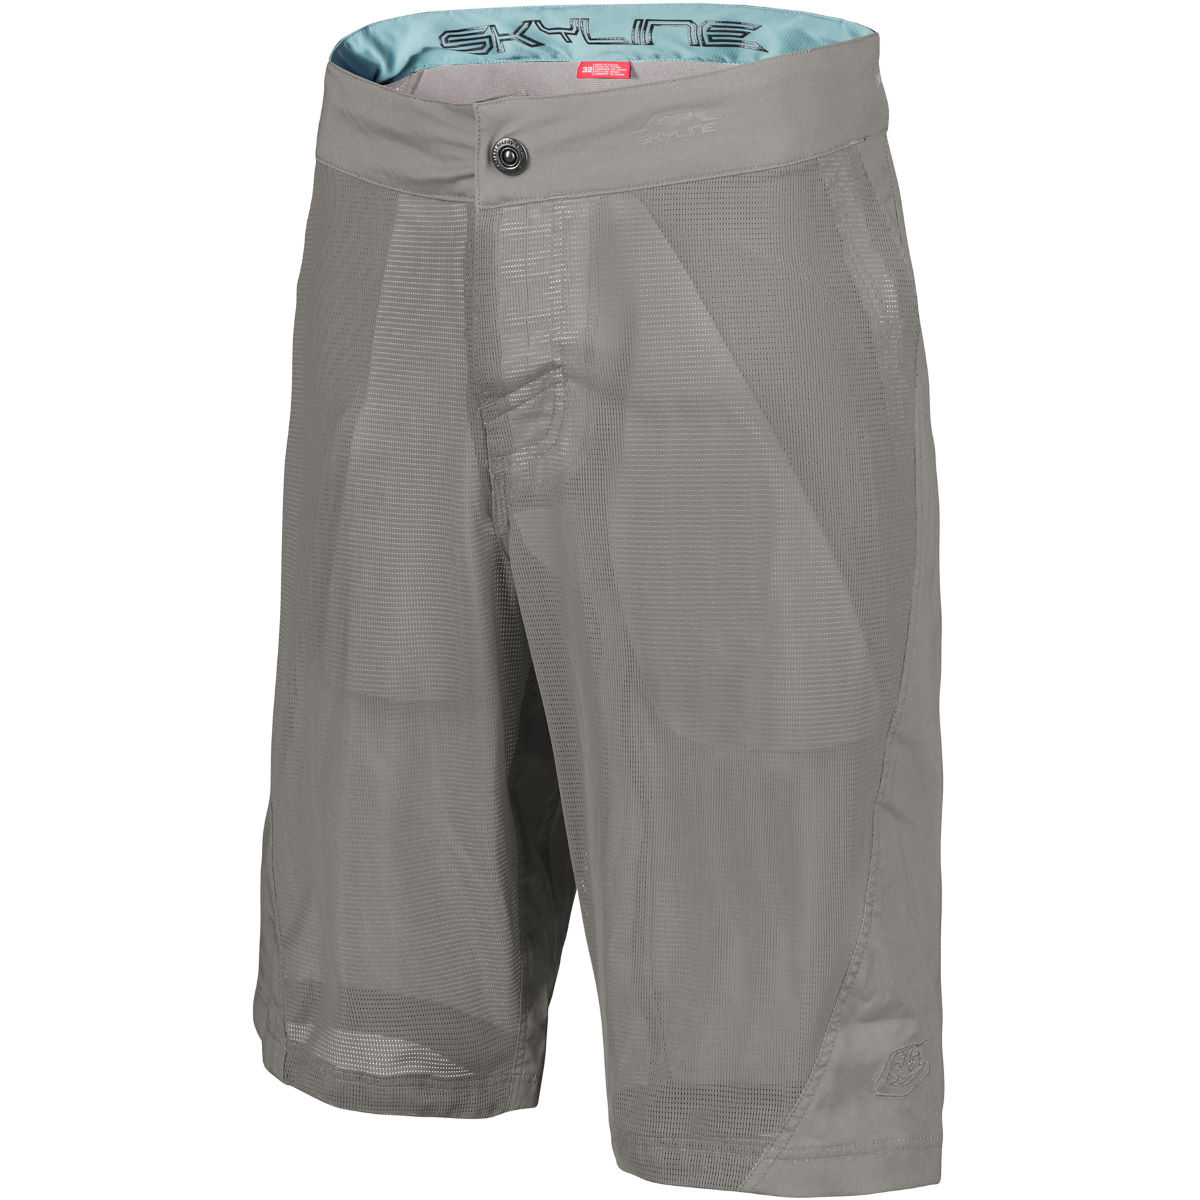 Bermudas Troy Lee Designs Skyline Air - Bermudas